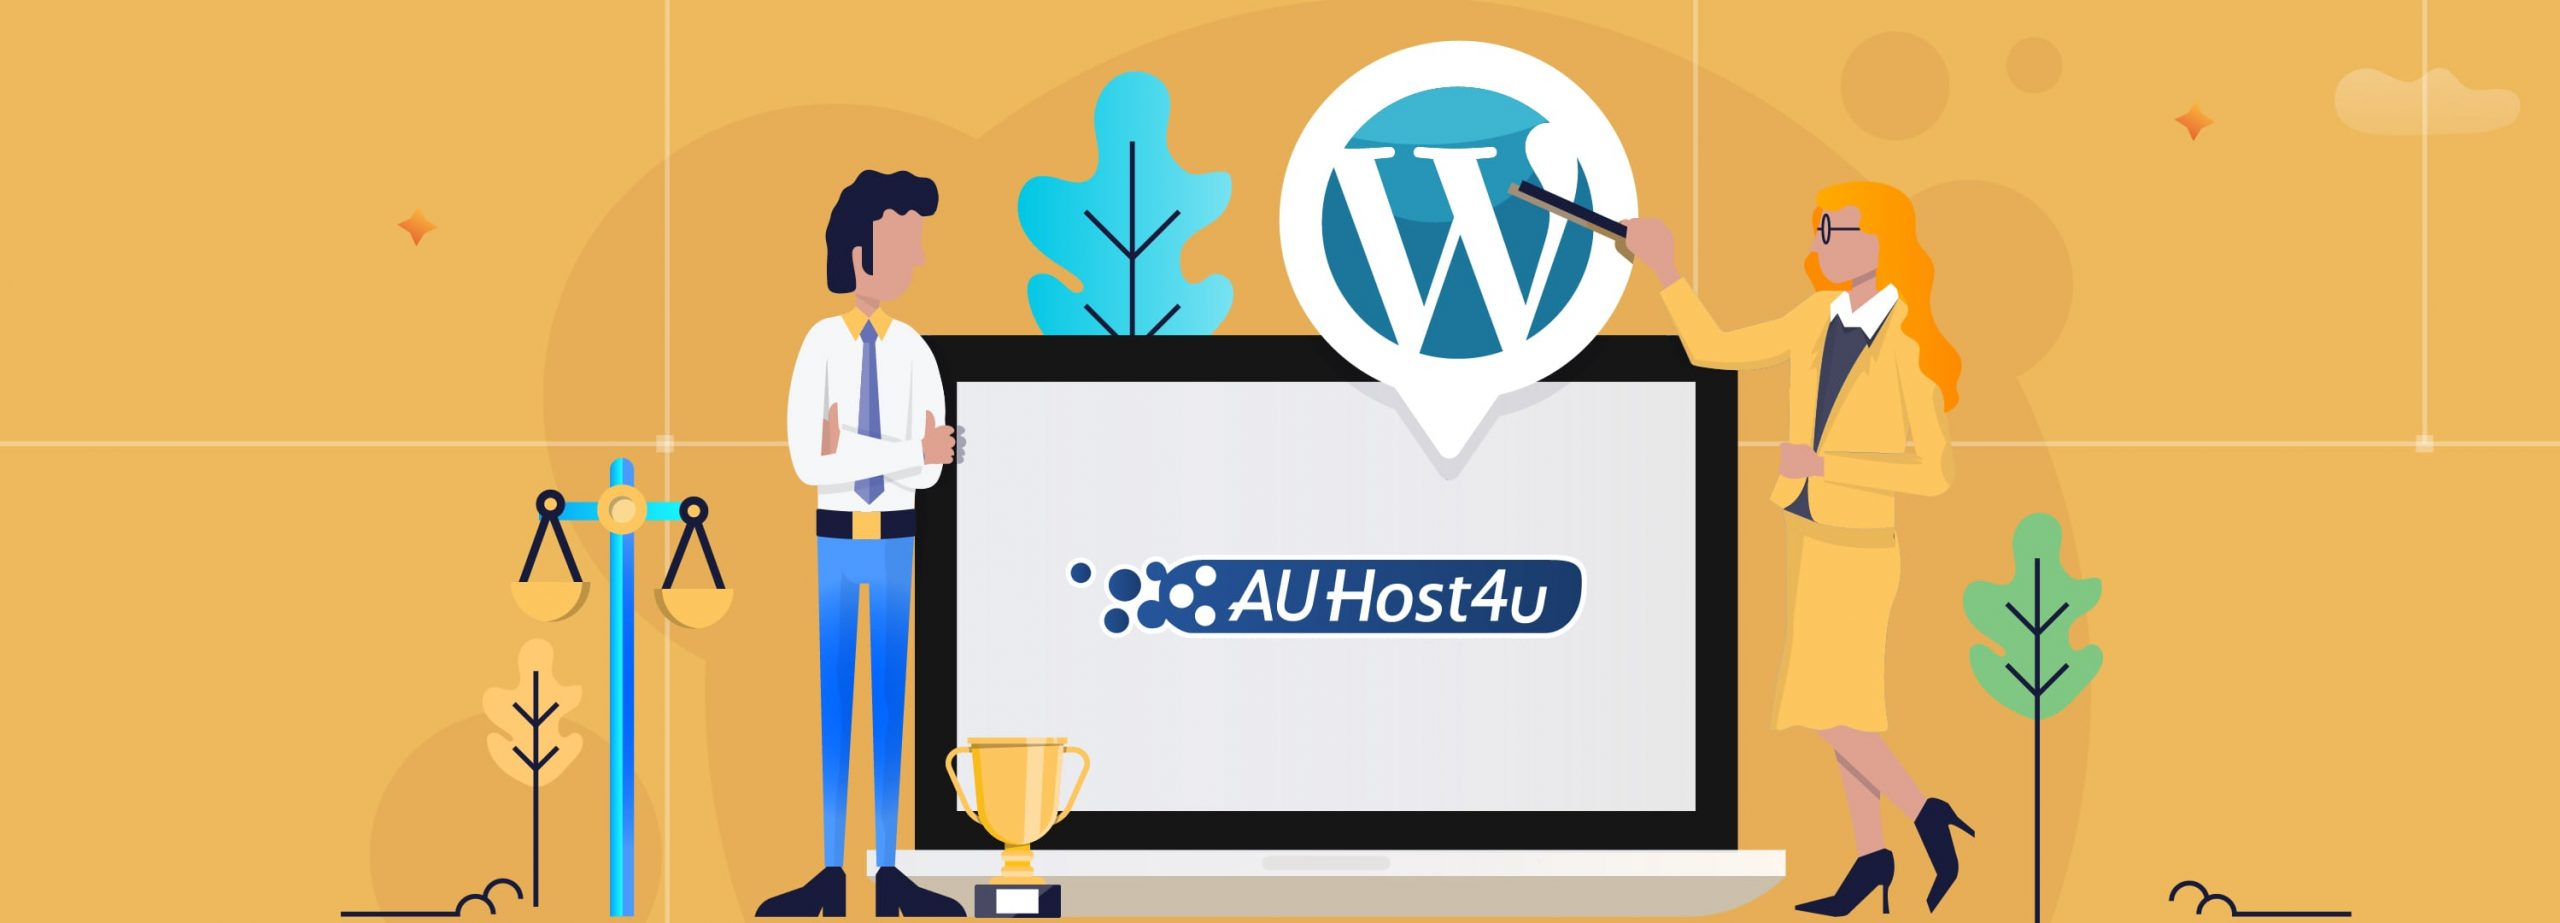 wordpress-nstalations-auh